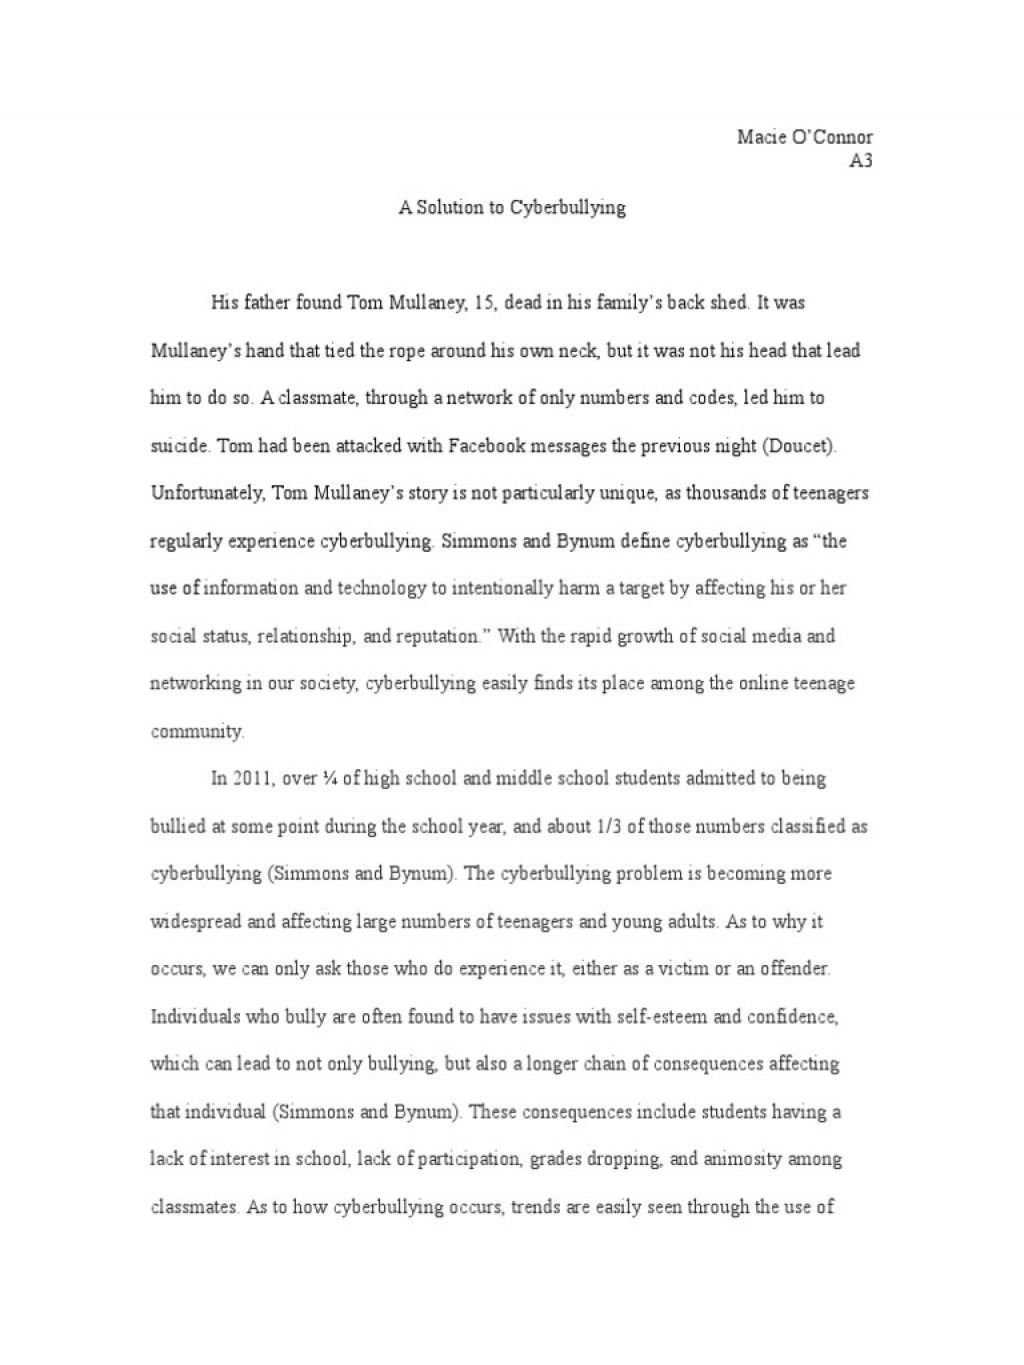 008 Essay Example Bullying Problem Solution Cyberbullying Communication How To Stop In Schools High School Avoid At Deal With Ways Prevent Awful Topics Cyber Titles Persuasive Ideas Large